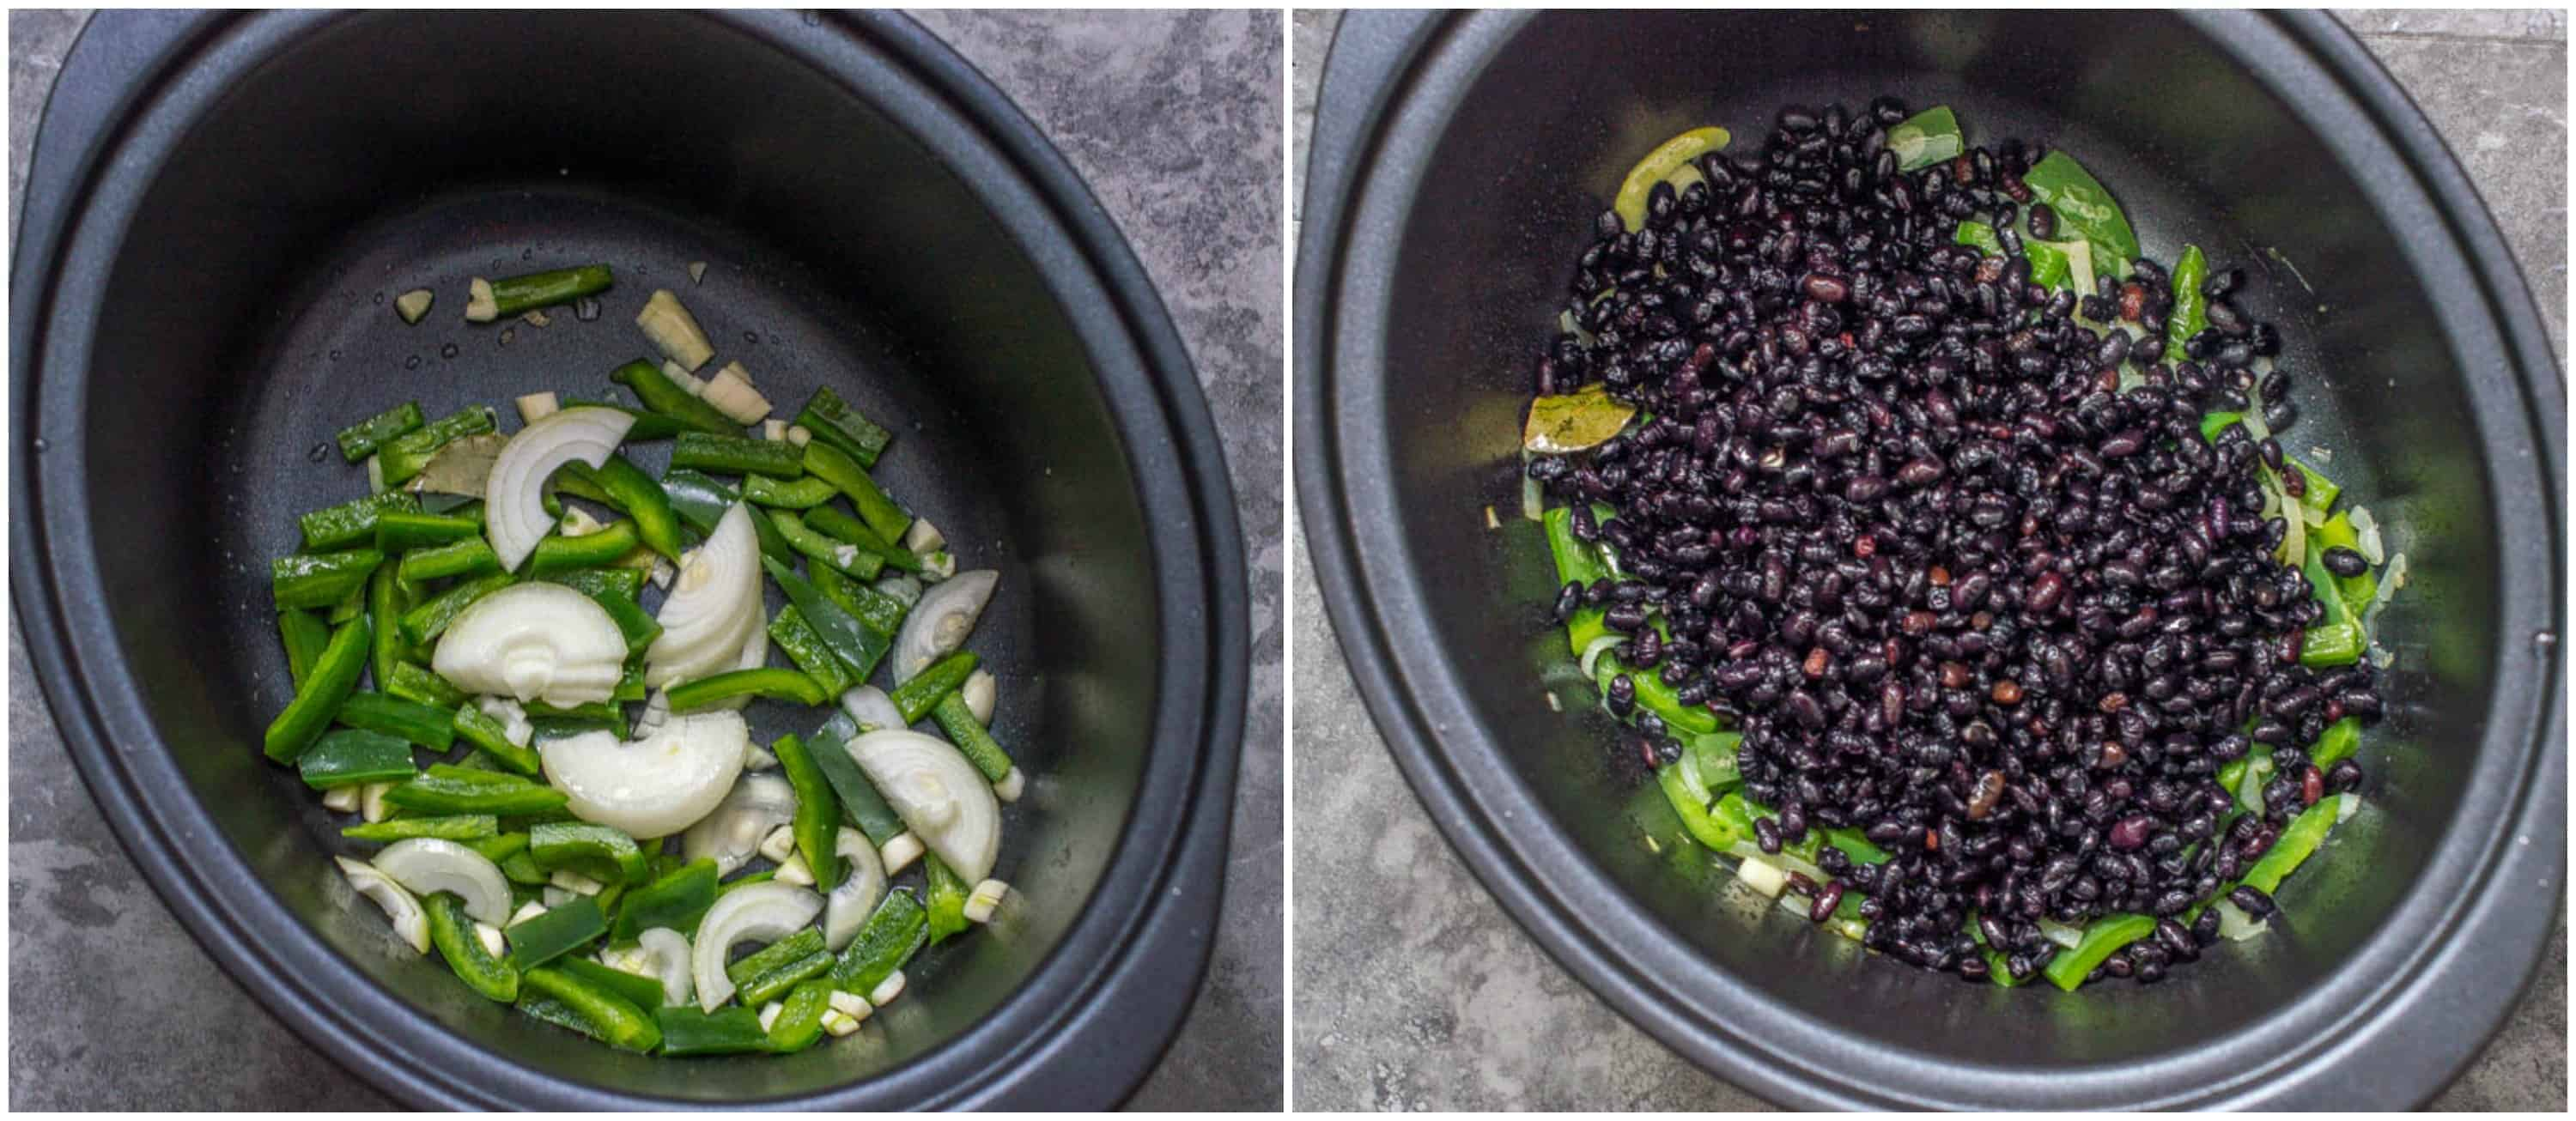 slow cooker black beans steps 3-4 saute the aromatics